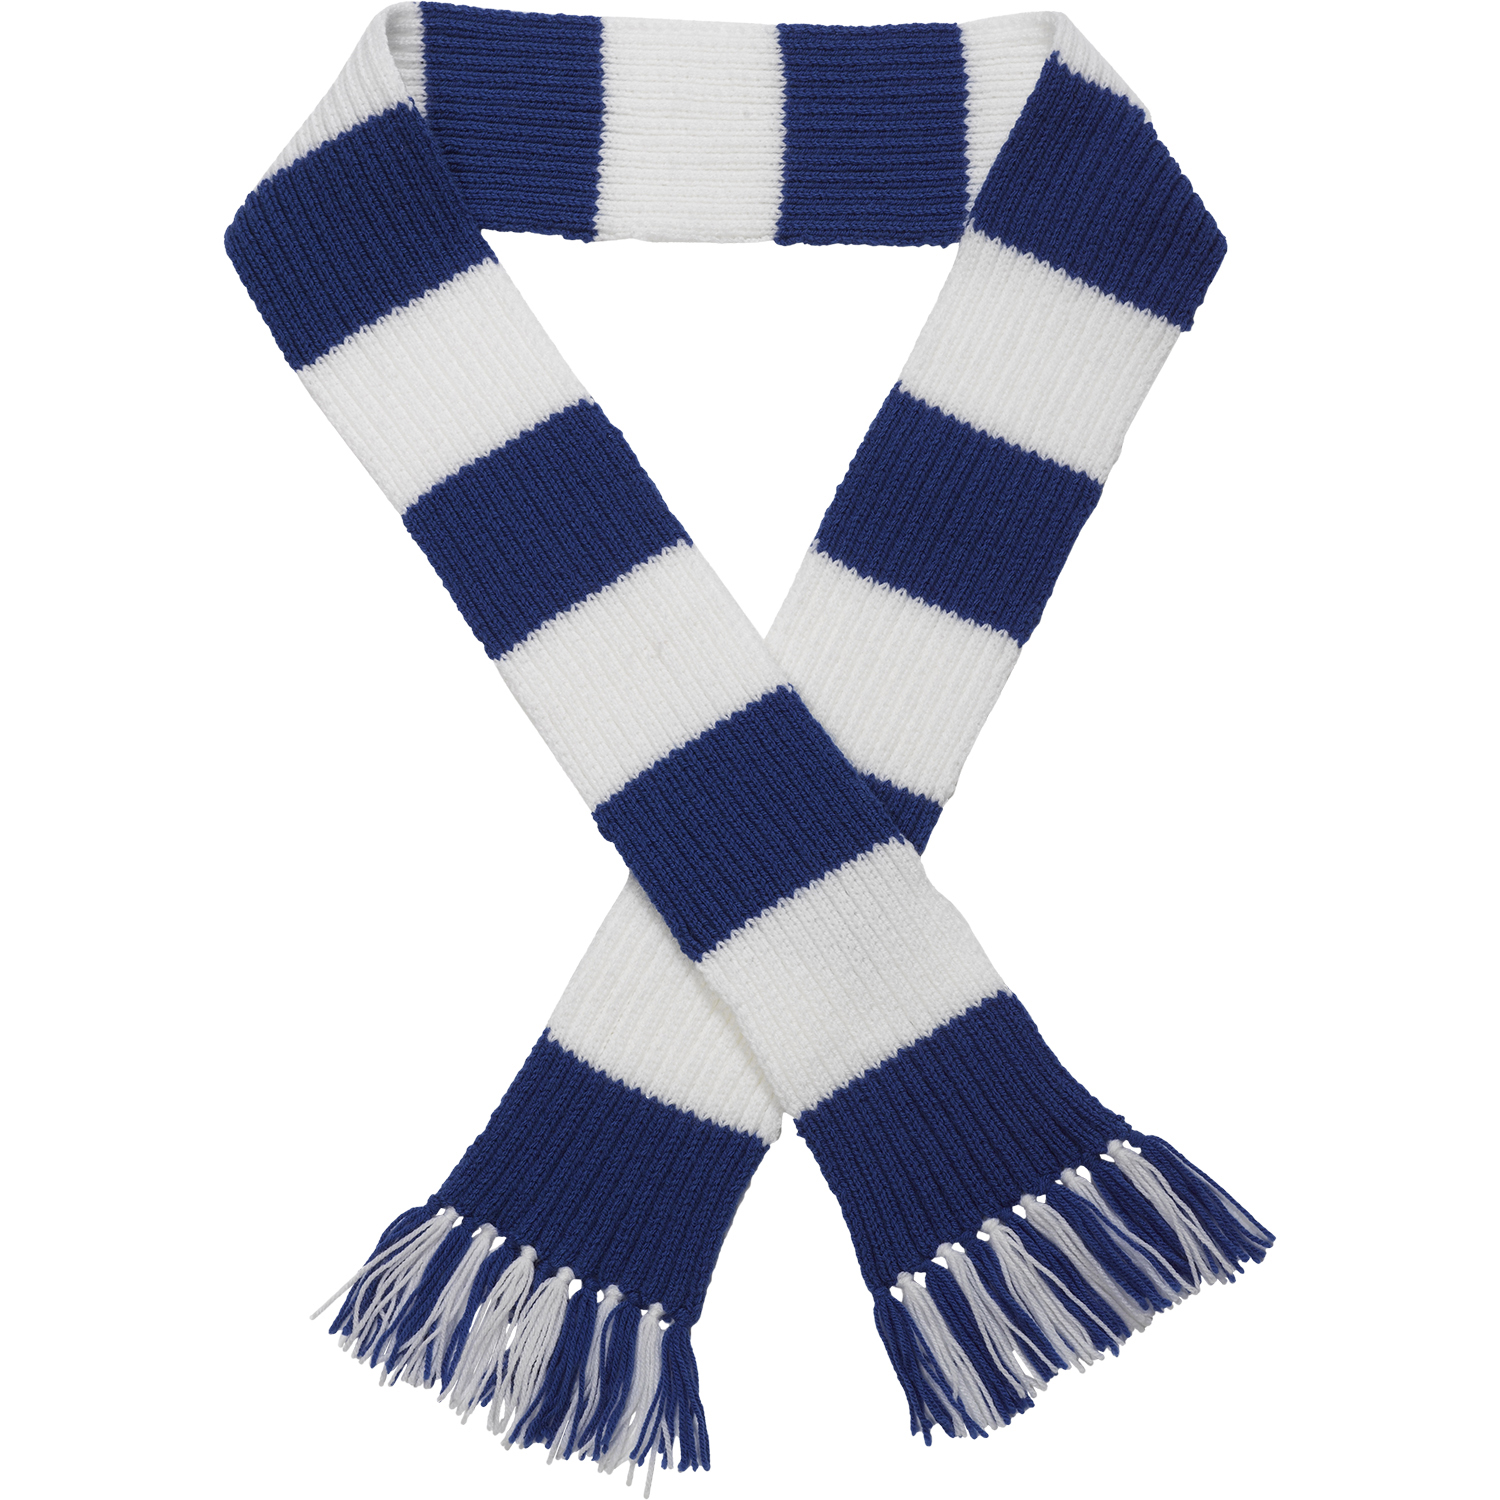 Craft Hobby Knitted Scarf Kit Football & Rugby DK Double Knitting Pattern...